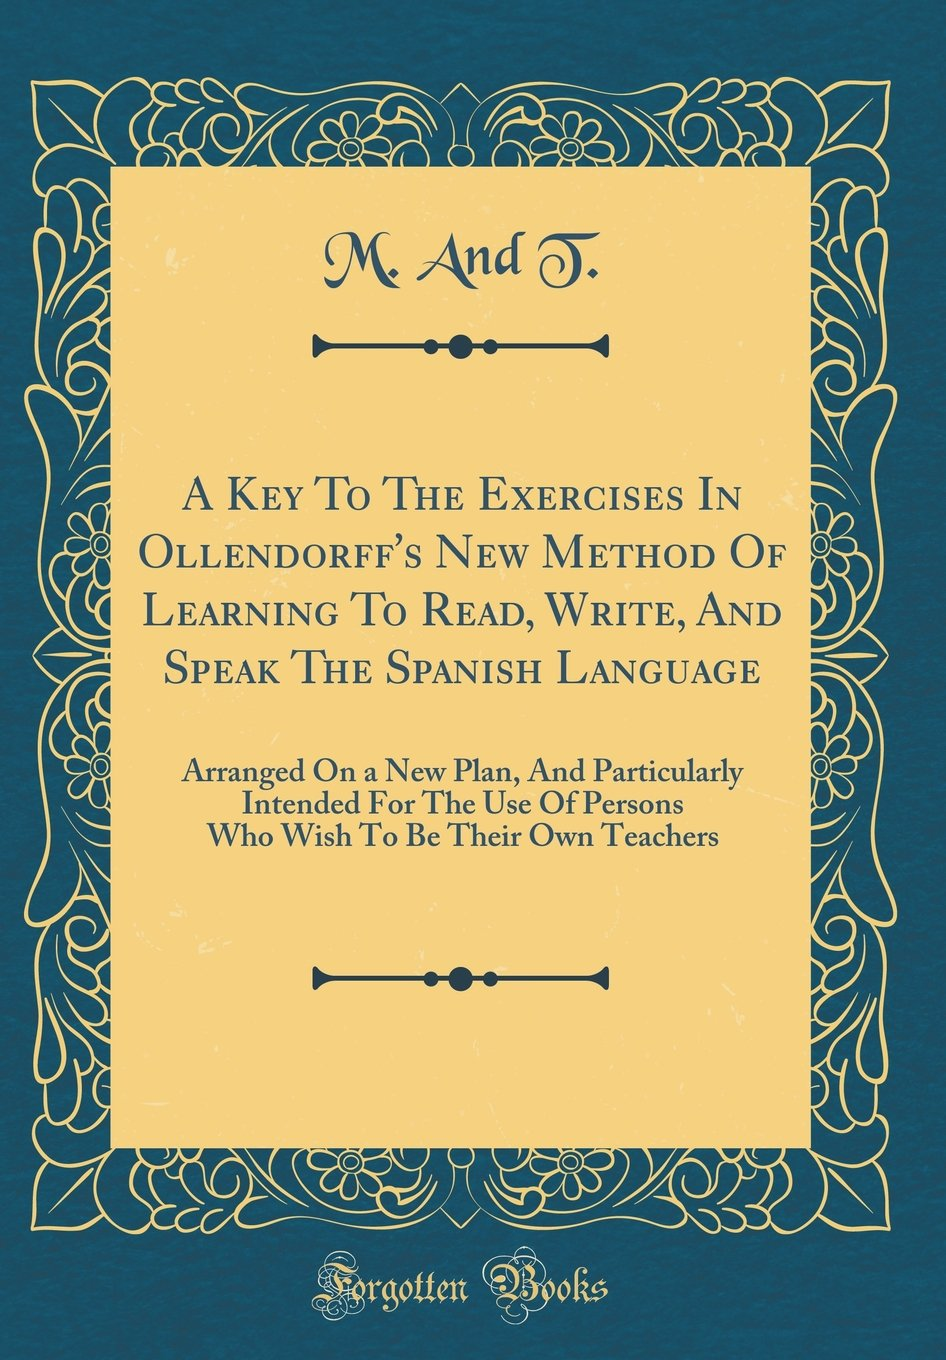 A Key To The Exercises In Ollendorff's New Method Of Learning To Read, Write, And Speak The Spanish Language: Arranged On a New Plan, And Particularly ... Teachers (Classic Reprint) (Spanish Edition) pdf